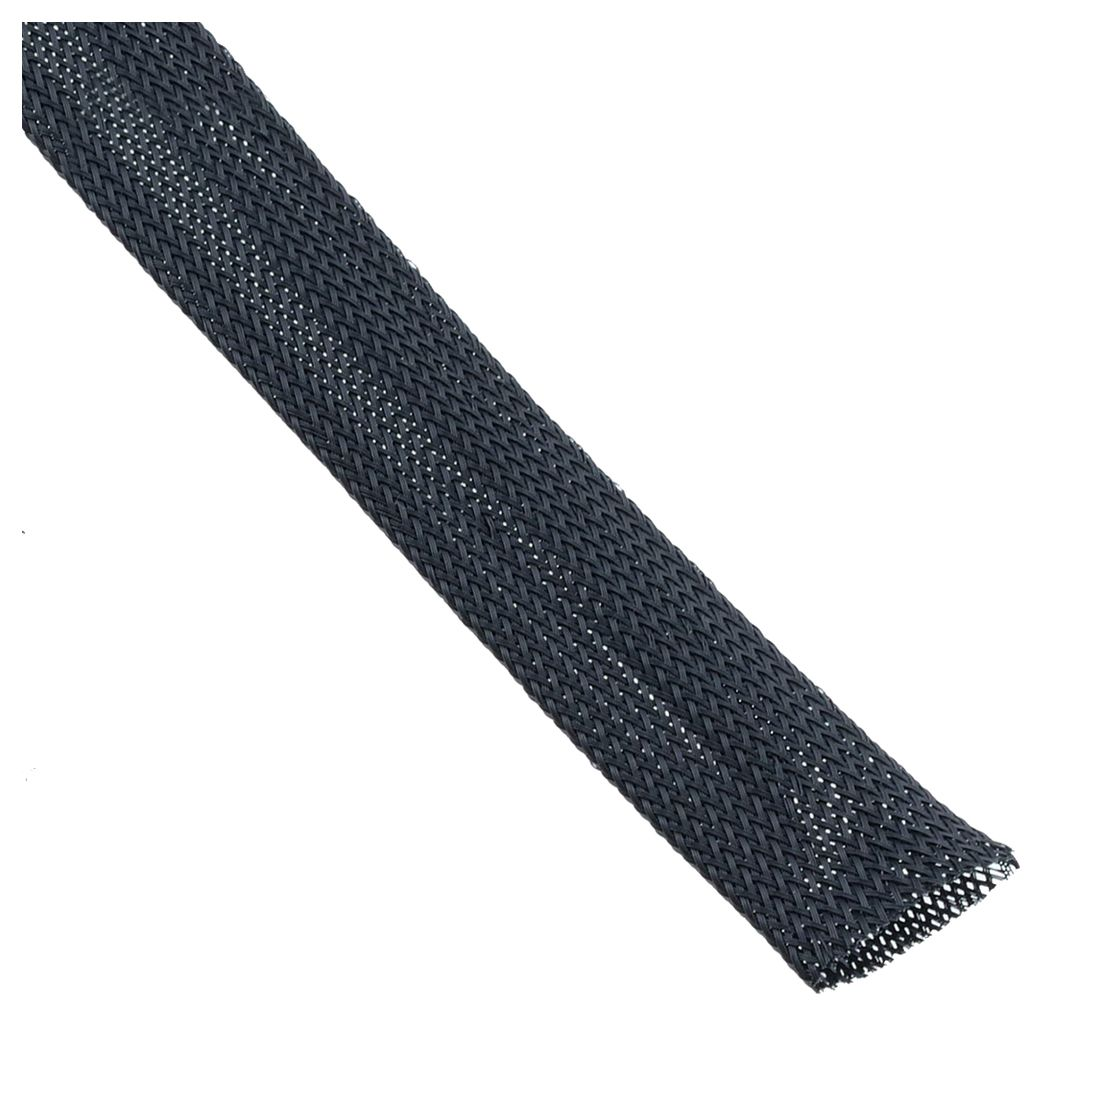 Black Braided Cable Sleeving - Wire Harness, Marine, Auto, Sheathing, 15mm Length:5m